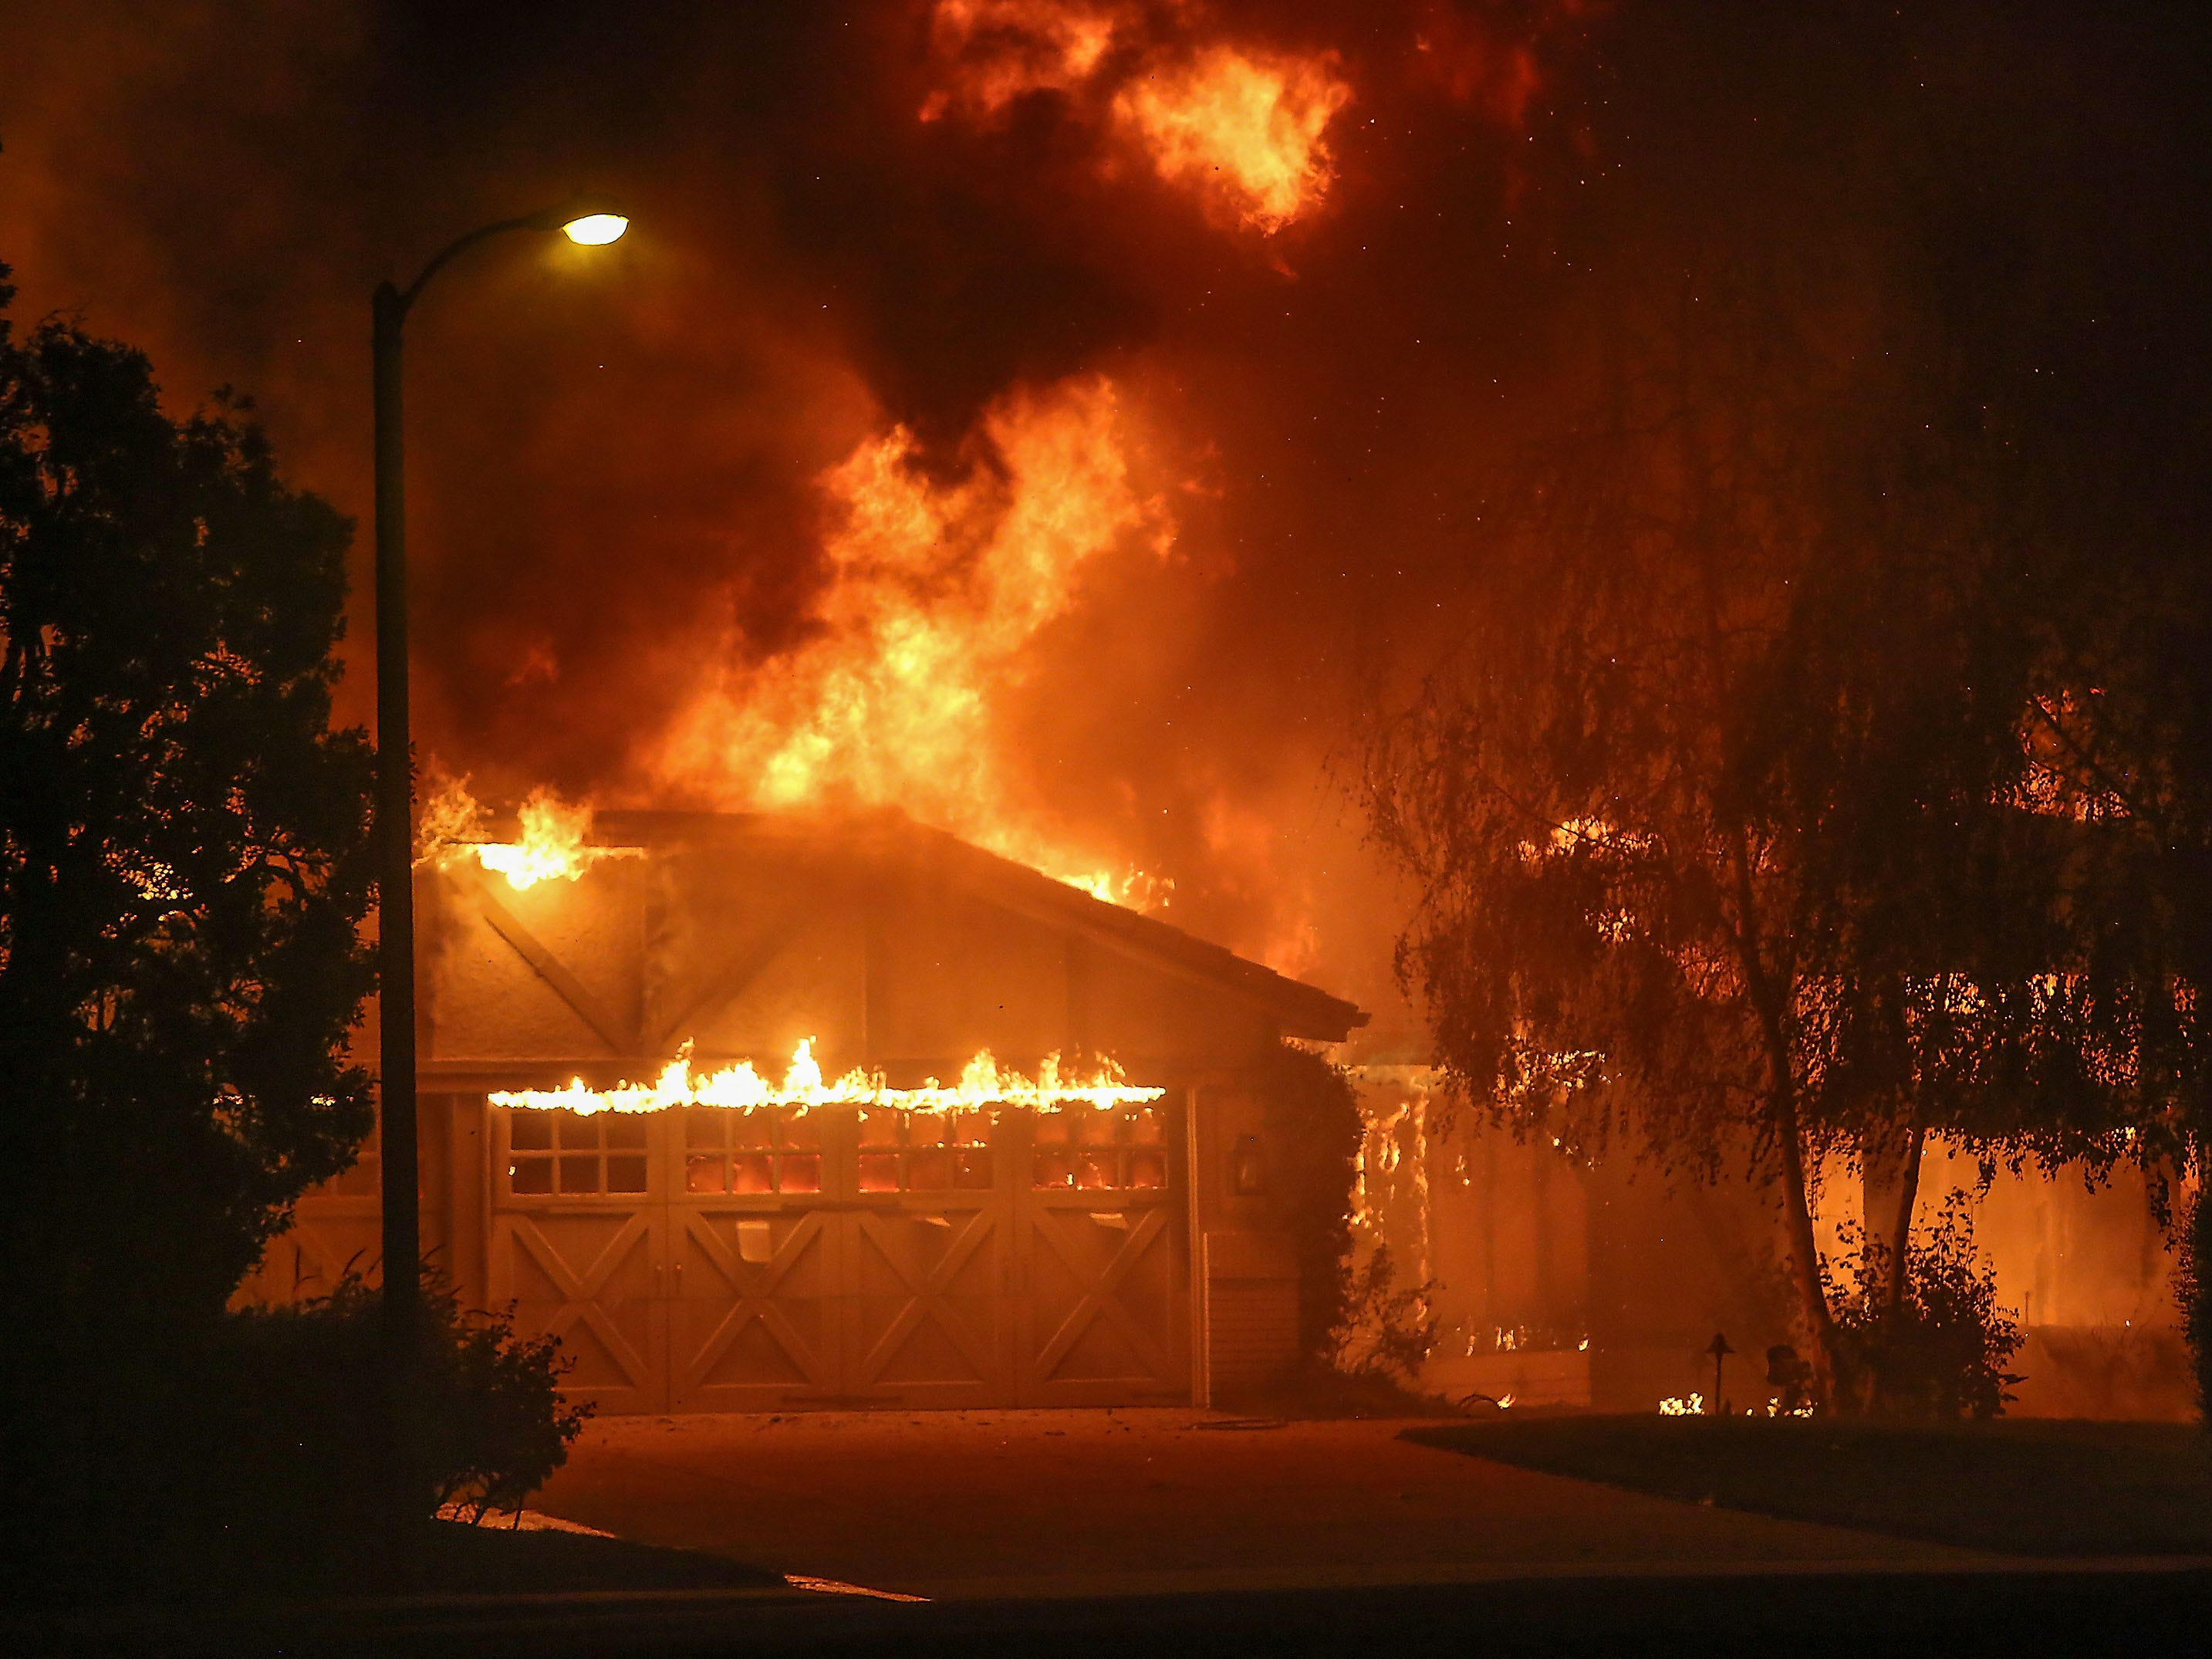 The Woolsey Fire burns a home on Lafitte Dr. in Oak Park, November 9, 2018. (Via OlyDrop)